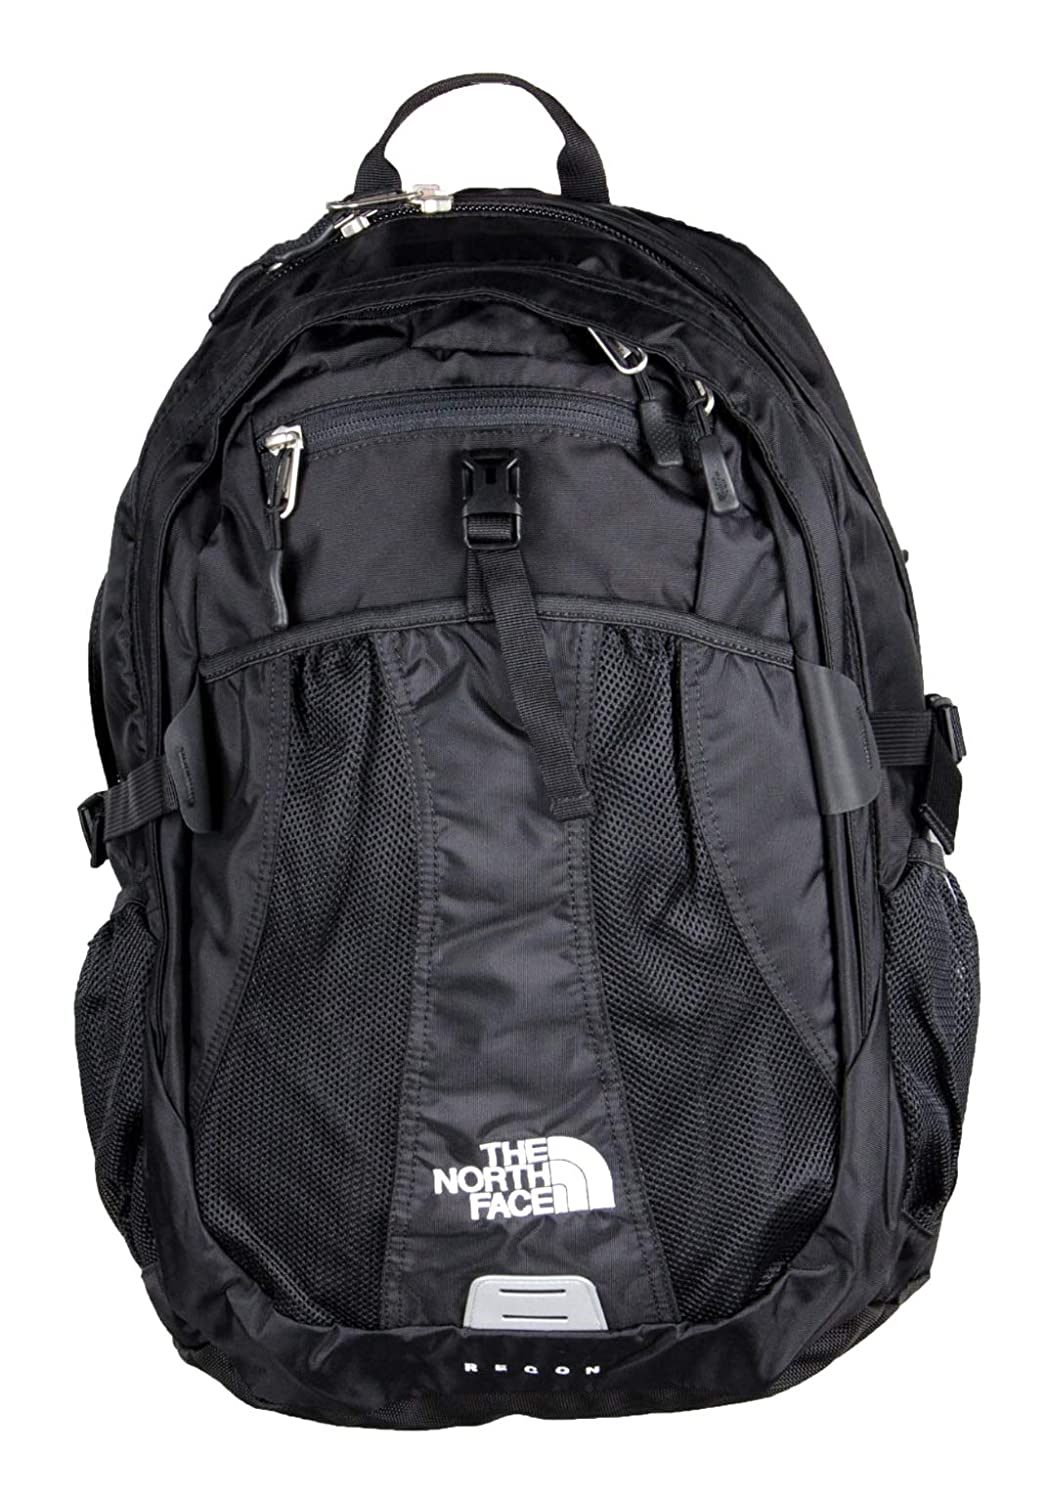 6ea346da6 The North Face Men Recon Backpack -RTO- TNF Black